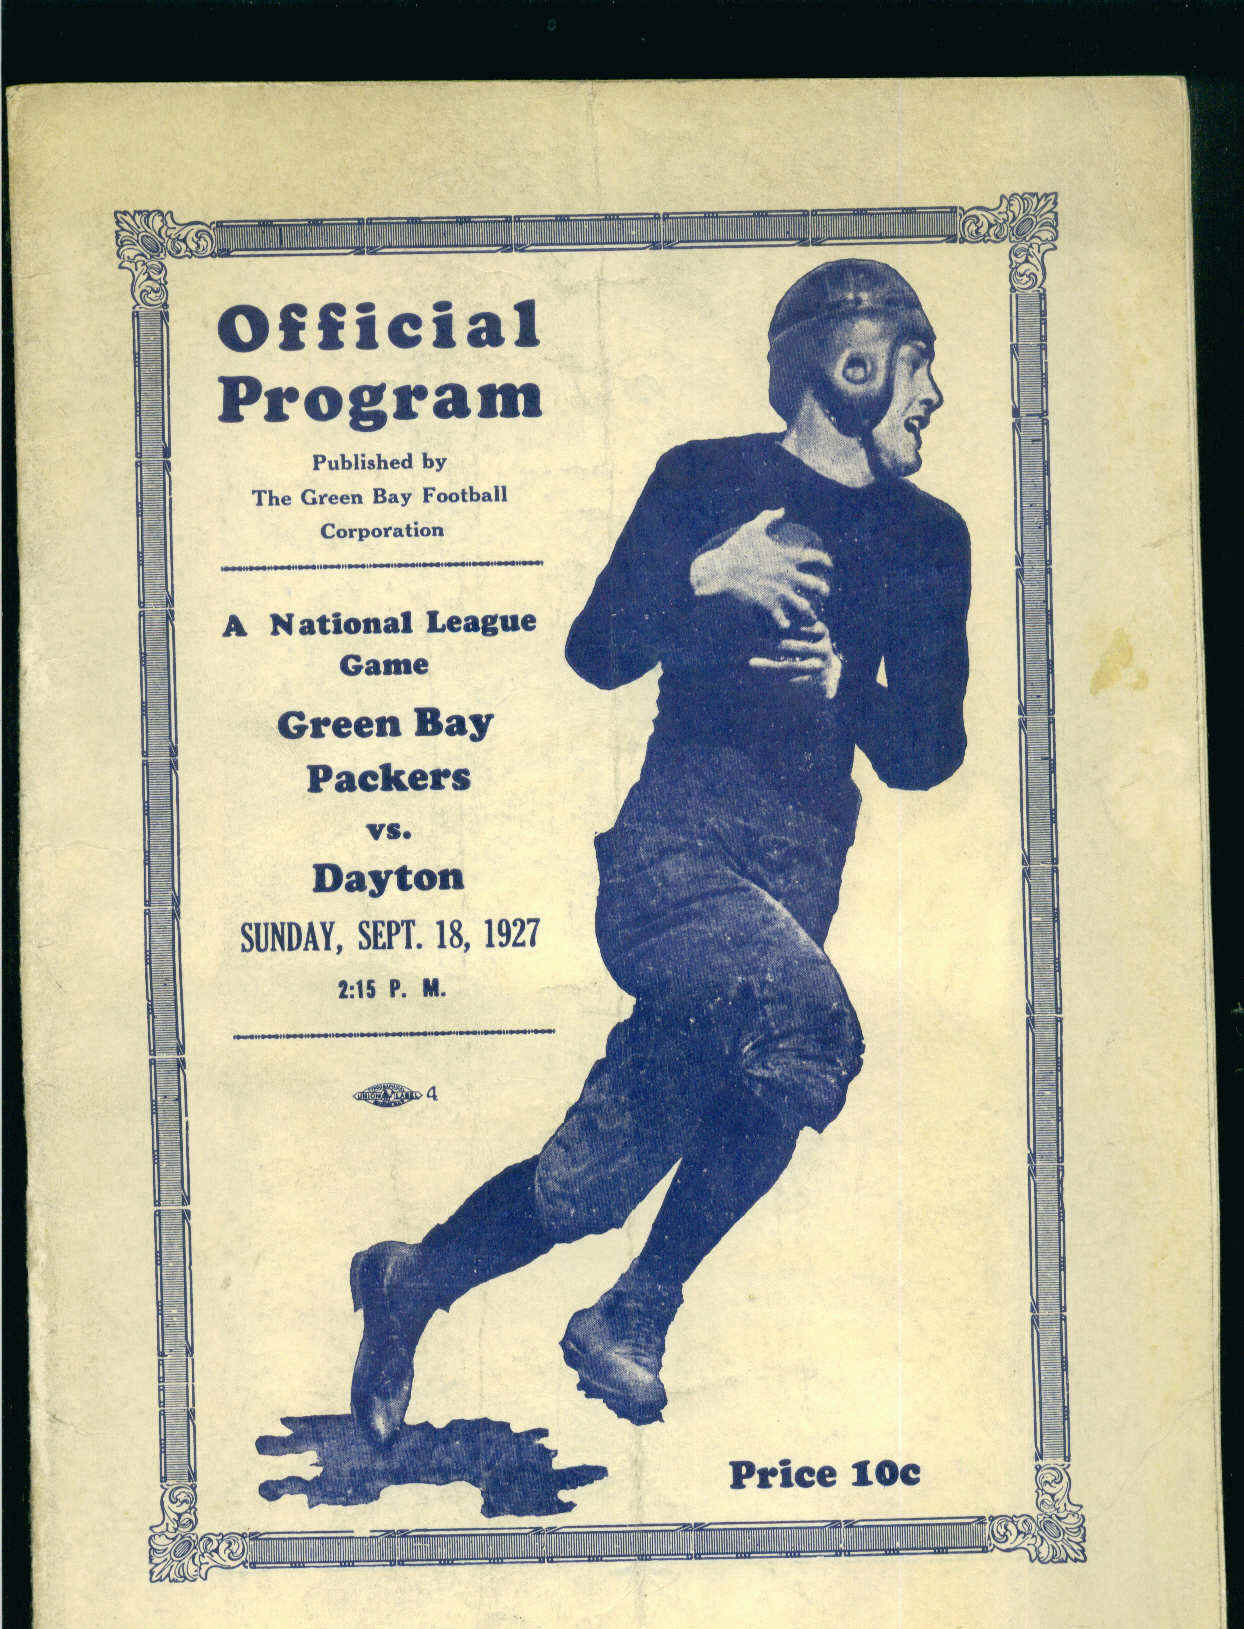 NFL - Green Bay Packers vs. Dayton Triangles, 1927